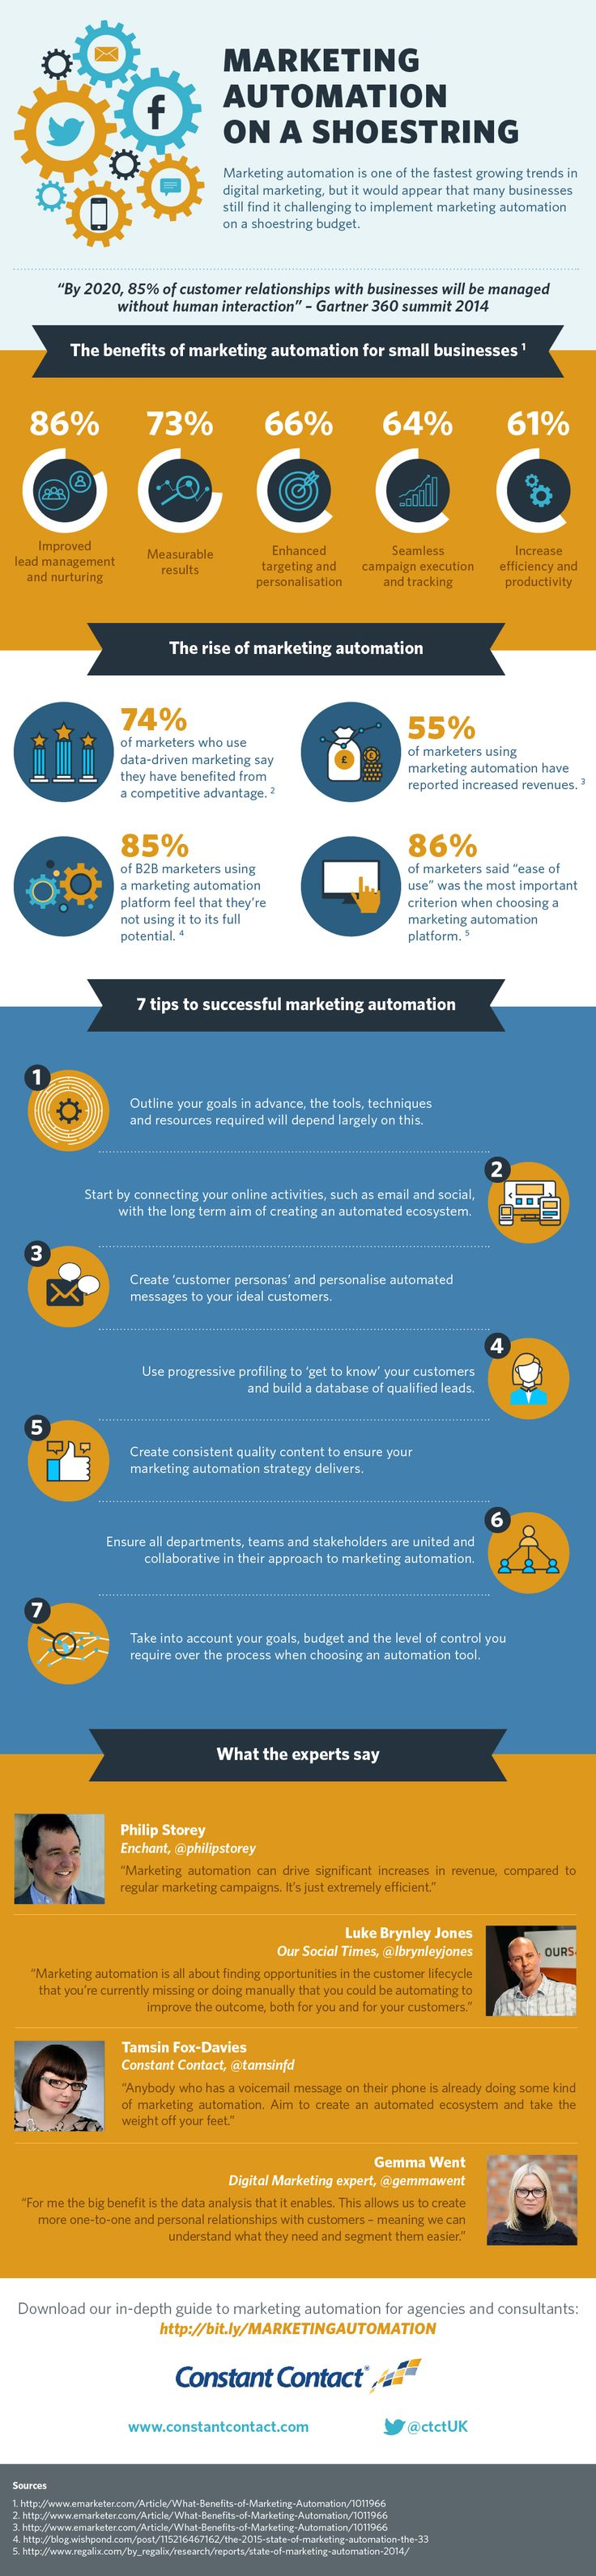 Does marketing automation work? It's a question plenty of small businesses are asking as they look to get more bang for their buck from their marketing campaigns. So we set about finding out. Our research is neatly displayed in the infographic. As you will see, the case for marketing automation is pretty darn compelling.